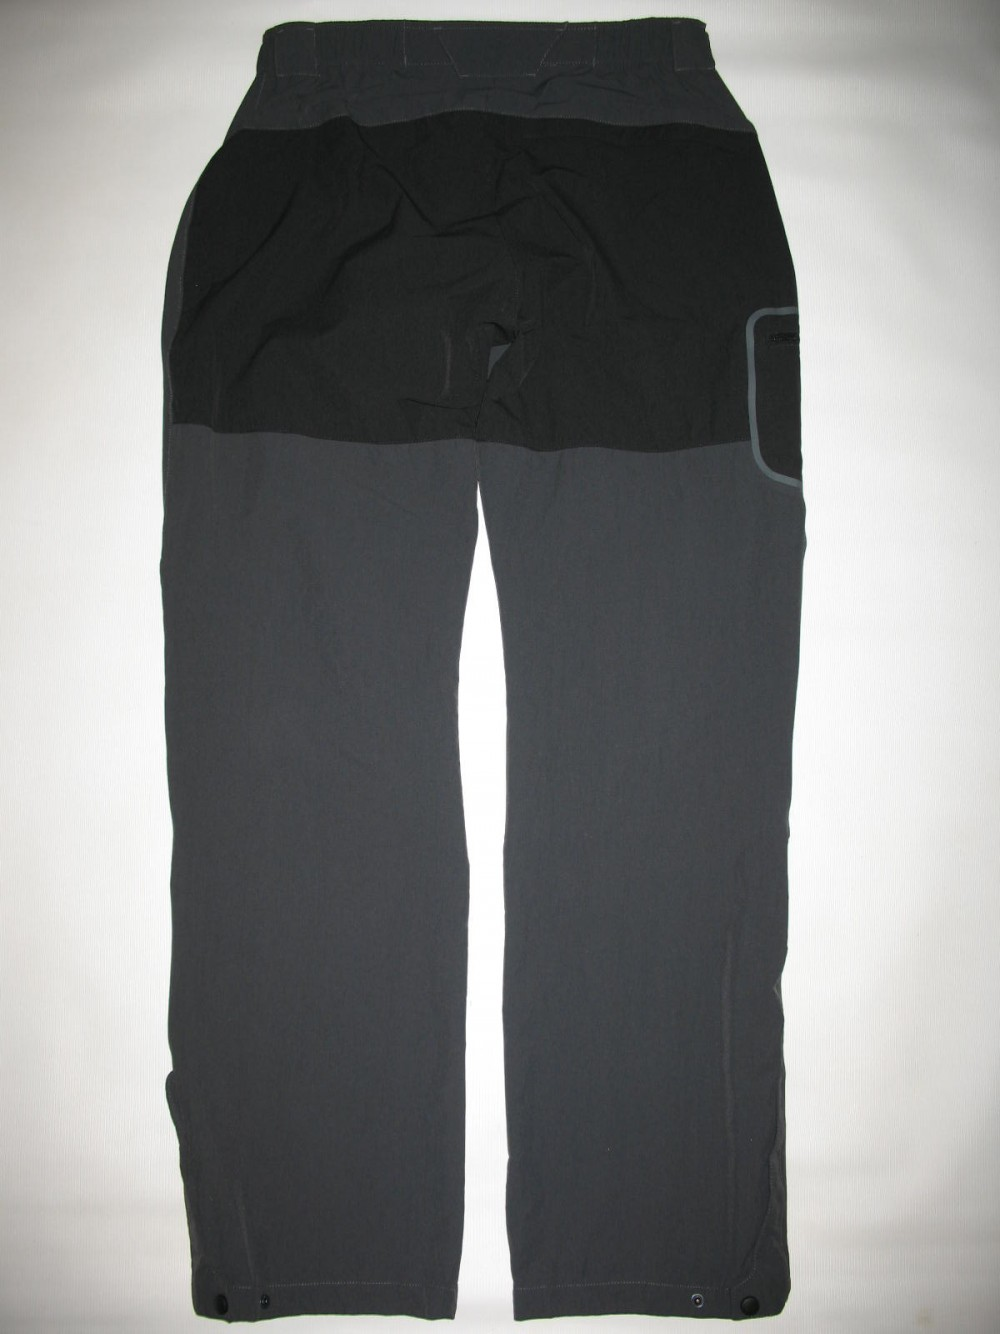 Штаны QUECHUA panther softshell pants (размер 48-M/L) - 2